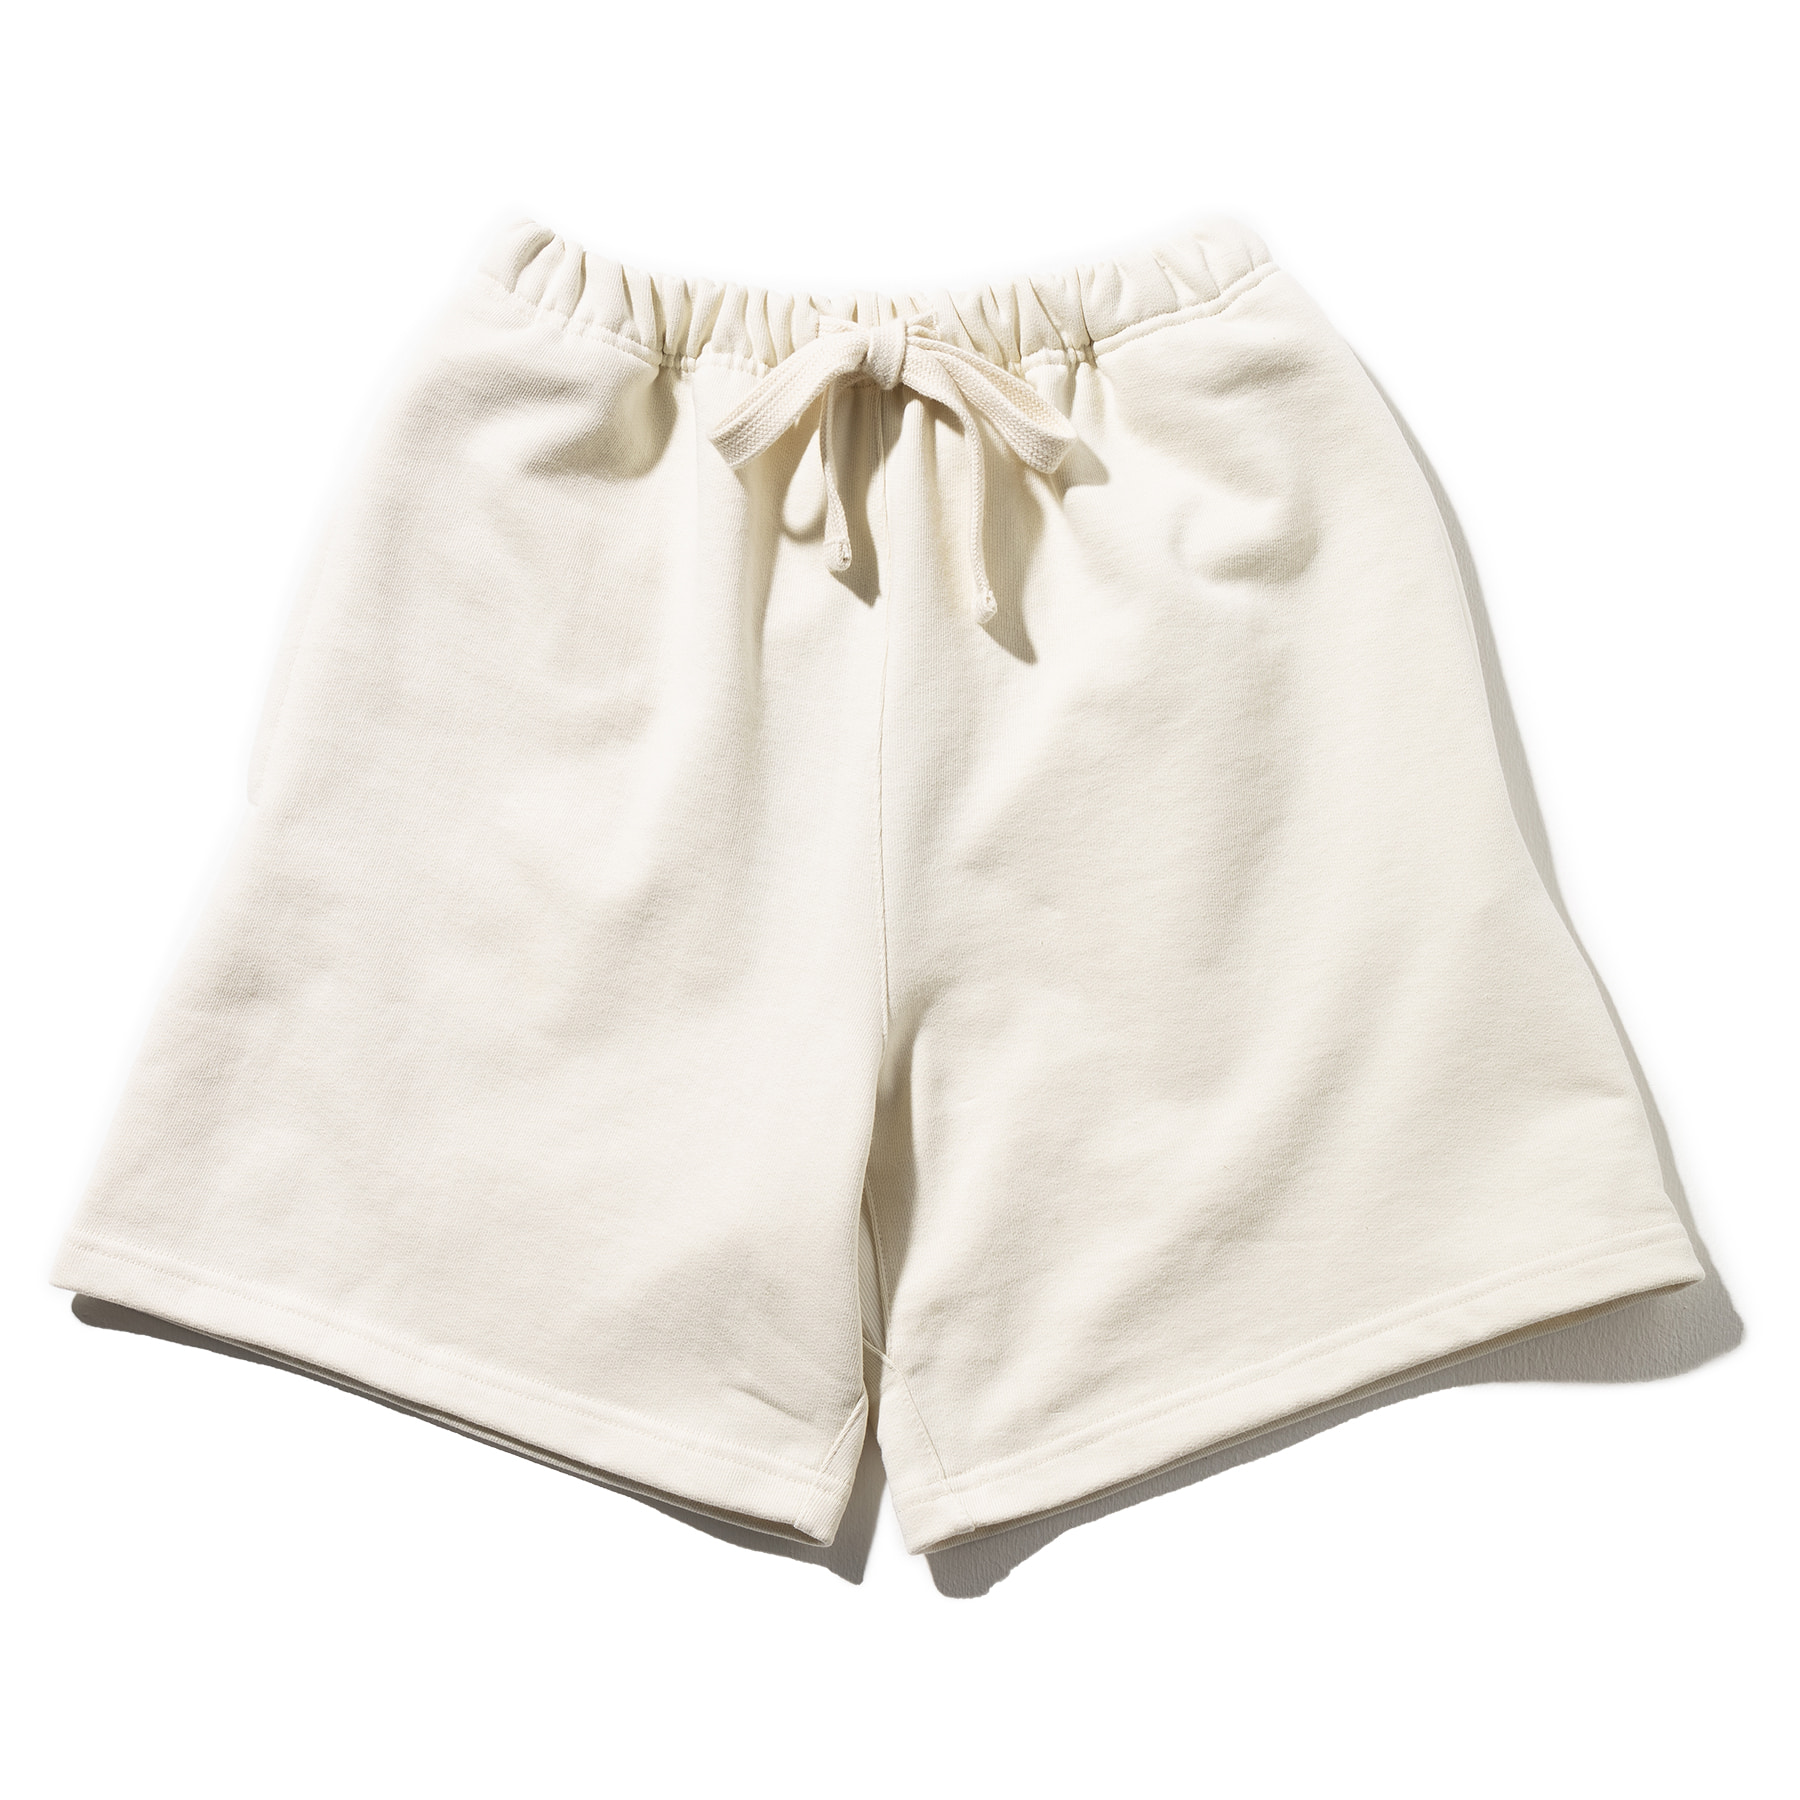 BASIC TRANING SHORT PANTS MSOSP003-IV